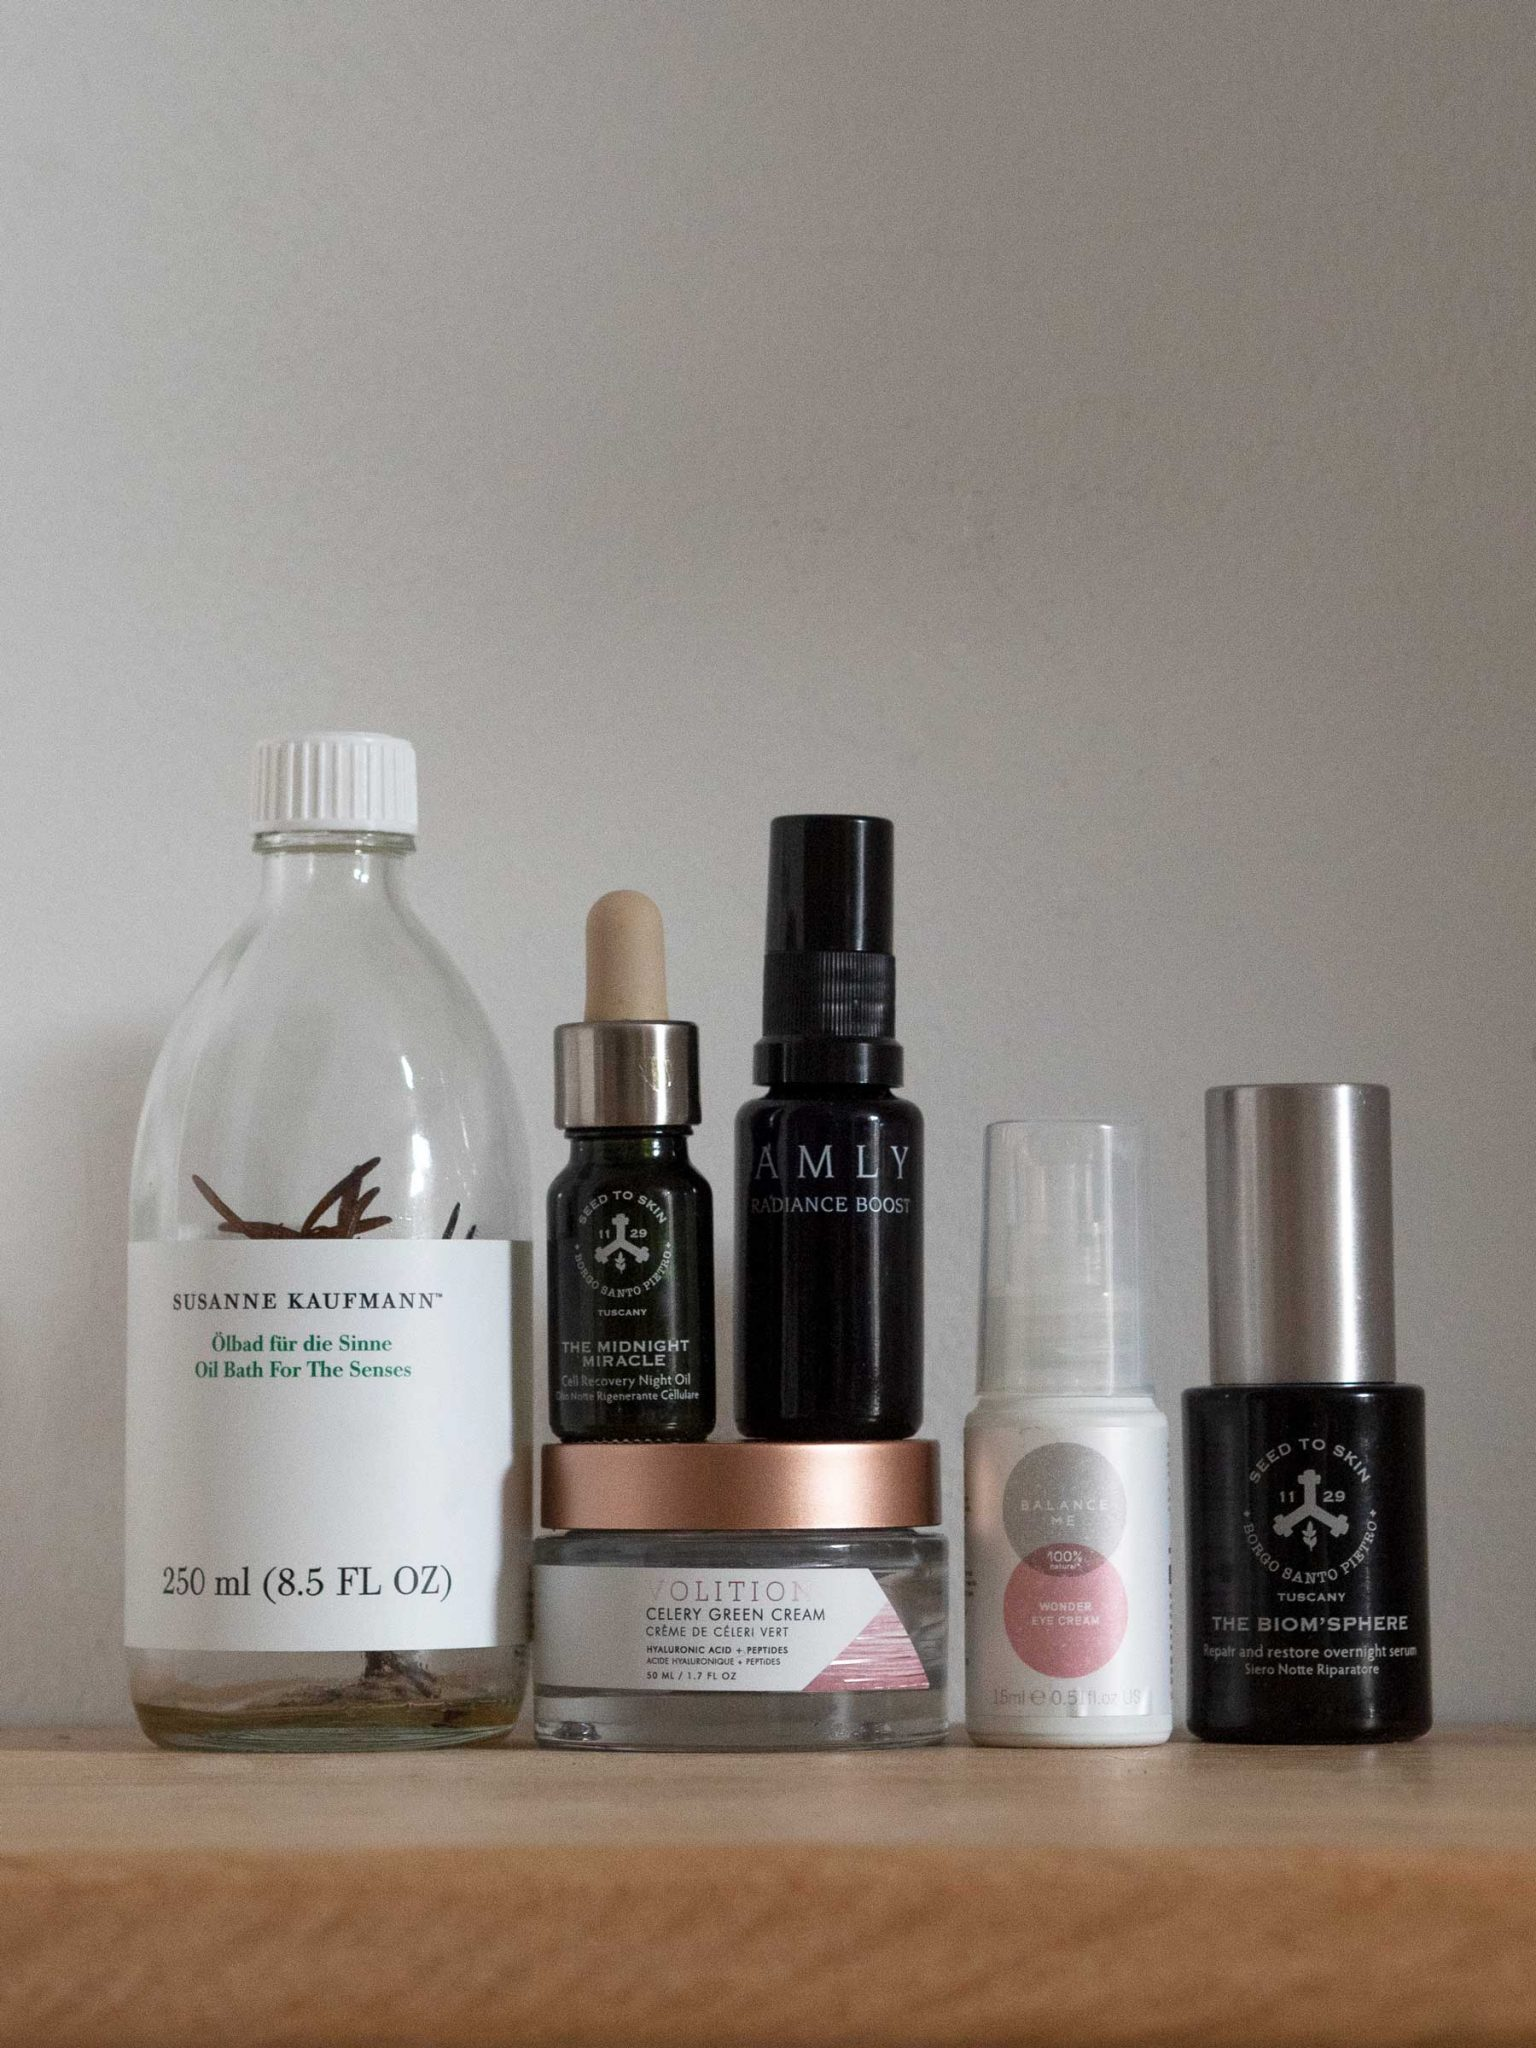 The best products are the ones you want to use every last drop of. Here are my latest empties.